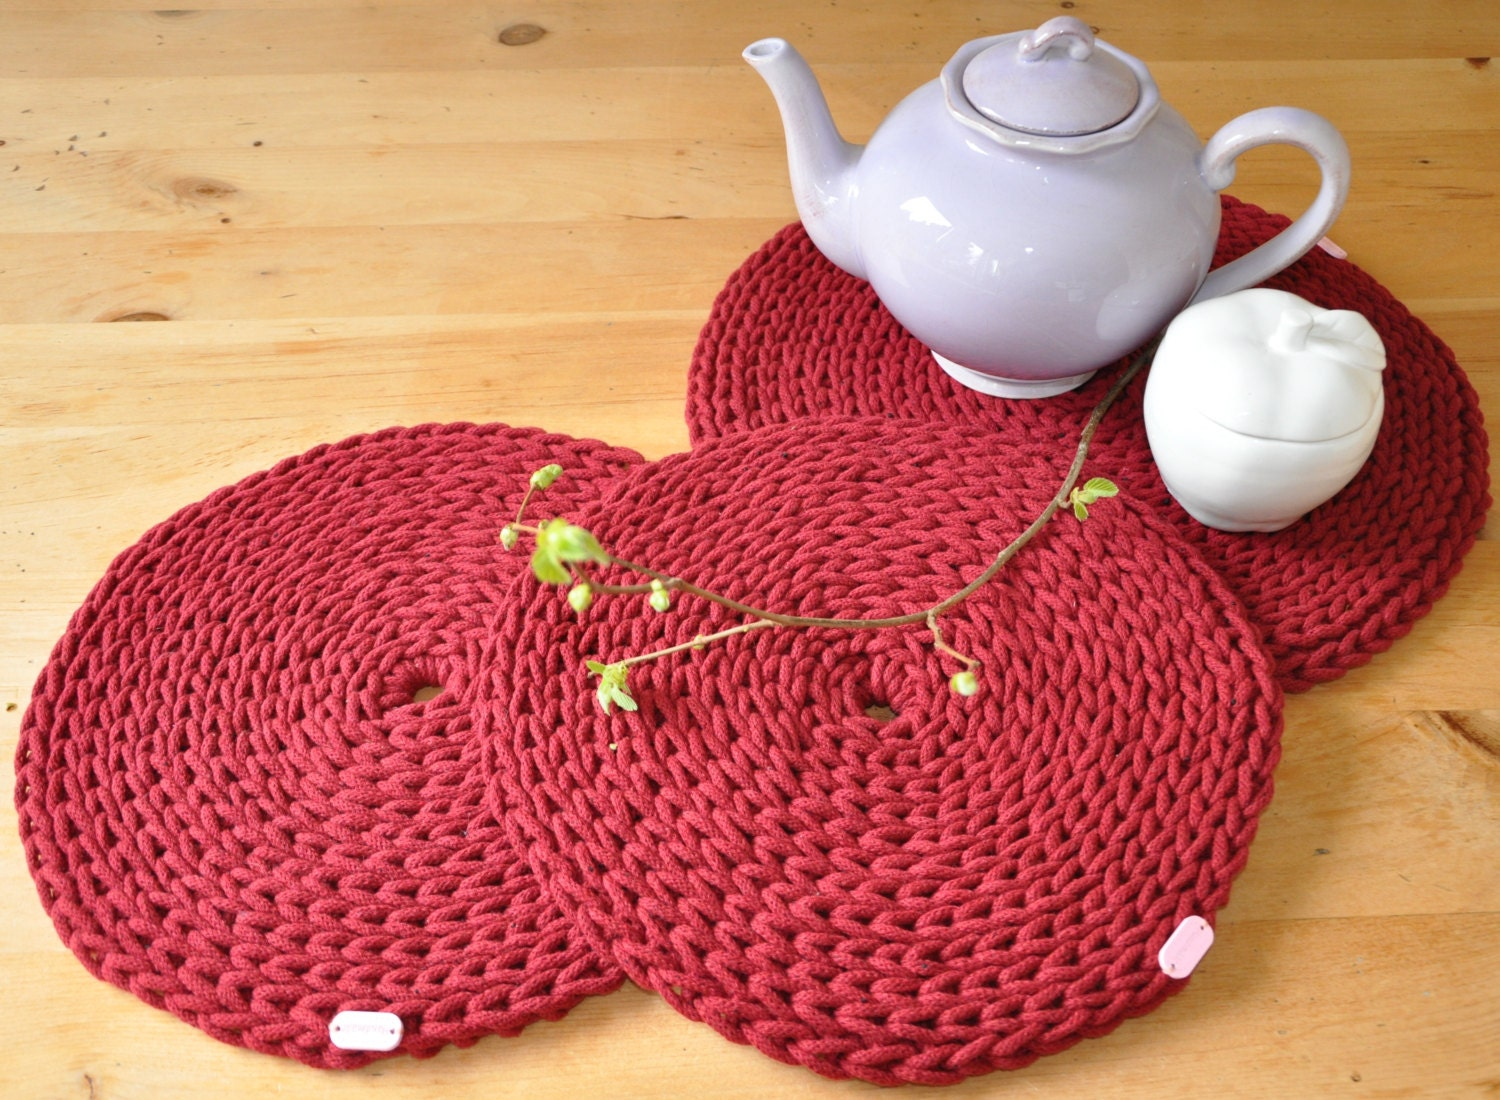 Crochet Round Placemats set of 3 Red by ThoughtsofHomeDecor